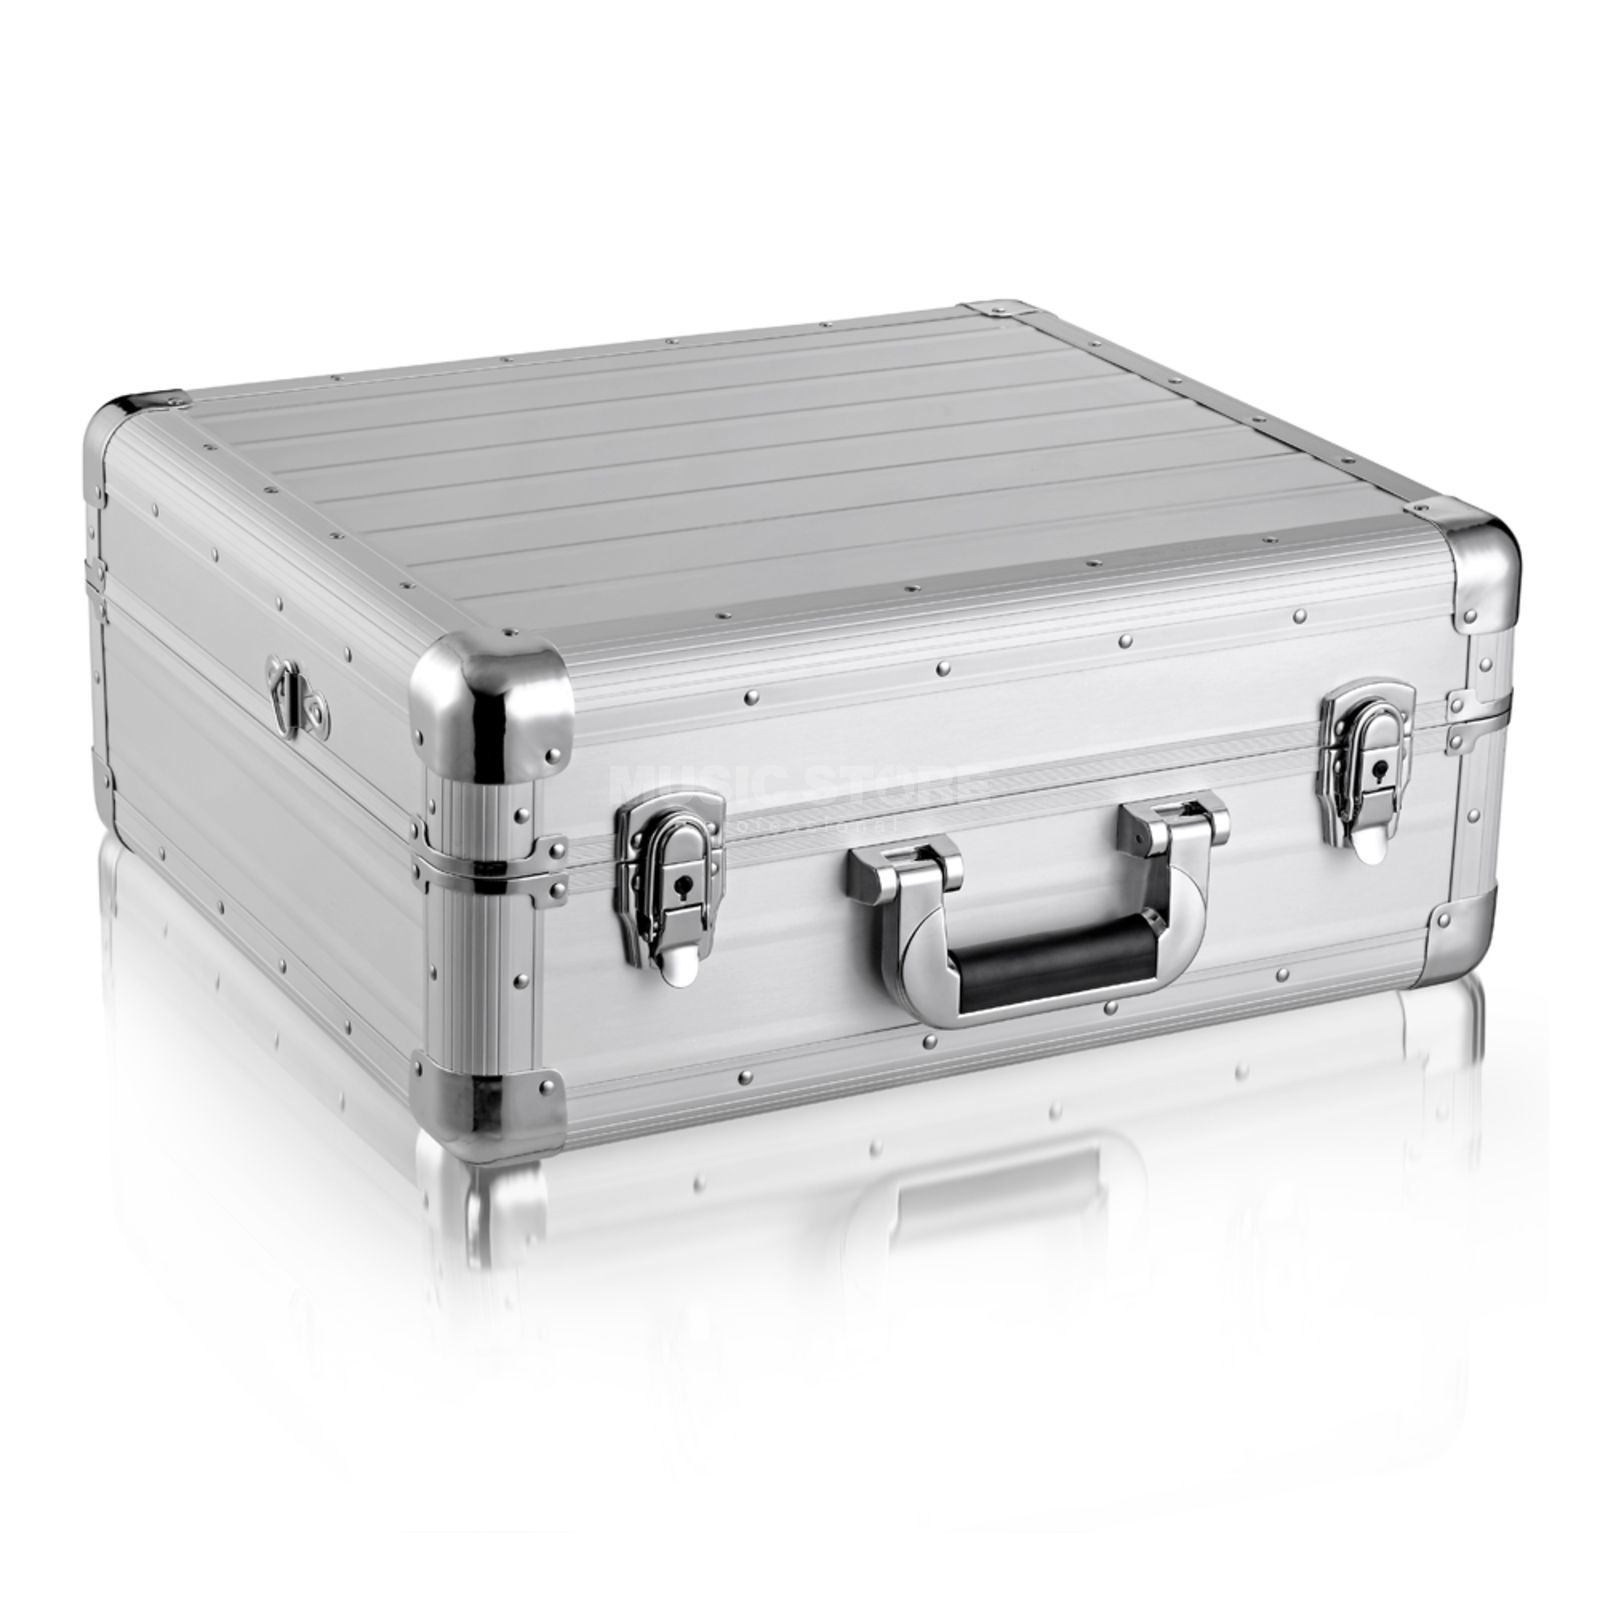 Zomo Case CDJ-13 XT, silber Flightcase for 13 Inch Devices Product Image